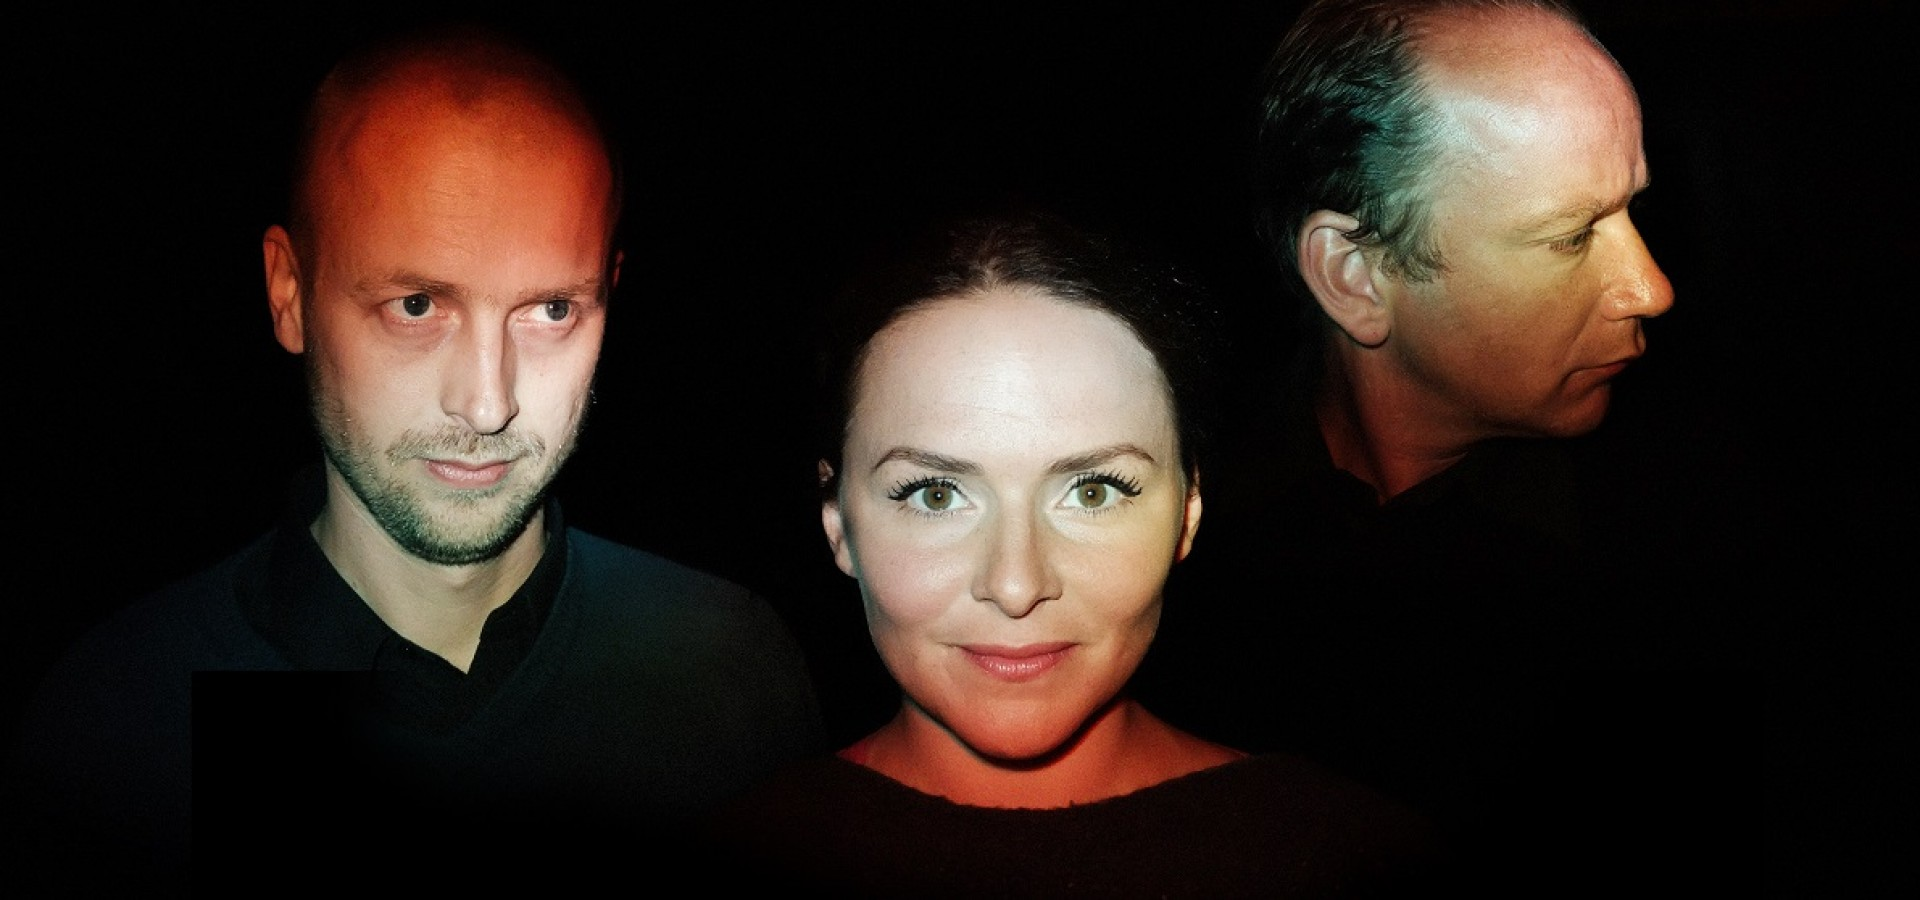 The Colorist Orchestra feat. Emiliana Torrini